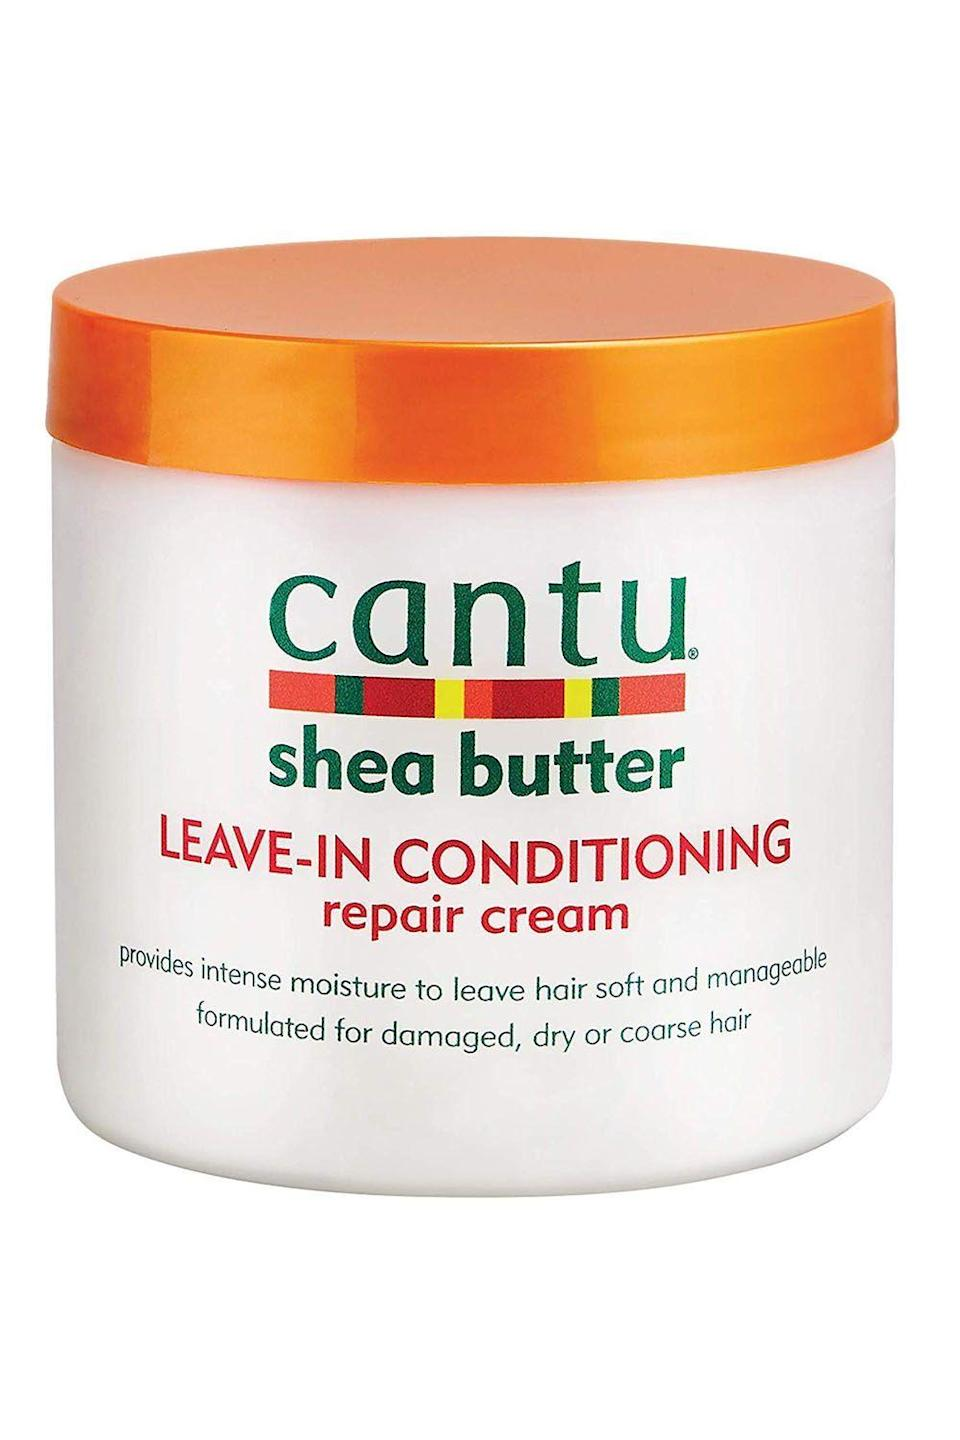 """<p><strong>Cantu</strong></p><p>amazon.com</p><p><strong>$5.24</strong></p><p><a href=""""https://www.amazon.com/dp/B00449W12S?tag=syn-yahoo-20&ascsubtag=%5Bartid%7C10049.g.33904669%5Bsrc%7Cyahoo-us"""" rel=""""nofollow noopener"""" target=""""_blank"""" data-ylk=""""slk:Shop Now"""" class=""""link rapid-noclick-resp"""">Shop Now</a></p><p>Anyone with natural hair knows that you can find so many gems in the <a href=""""https://www.cosmopolitan.com/style-beauty/beauty/g25019634/best-drugstore-shampoo-brands/"""" rel=""""nofollow noopener"""" target=""""_blank"""" data-ylk=""""slk:drugstore"""" class=""""link rapid-noclick-resp"""">drugstore</a> aisle, and leave-in conditioner is no exception. This <strong>shea butter-infused formula is deeply hydrating,</strong> quenching any thirst, while also giving you more manageable curls.</p>"""